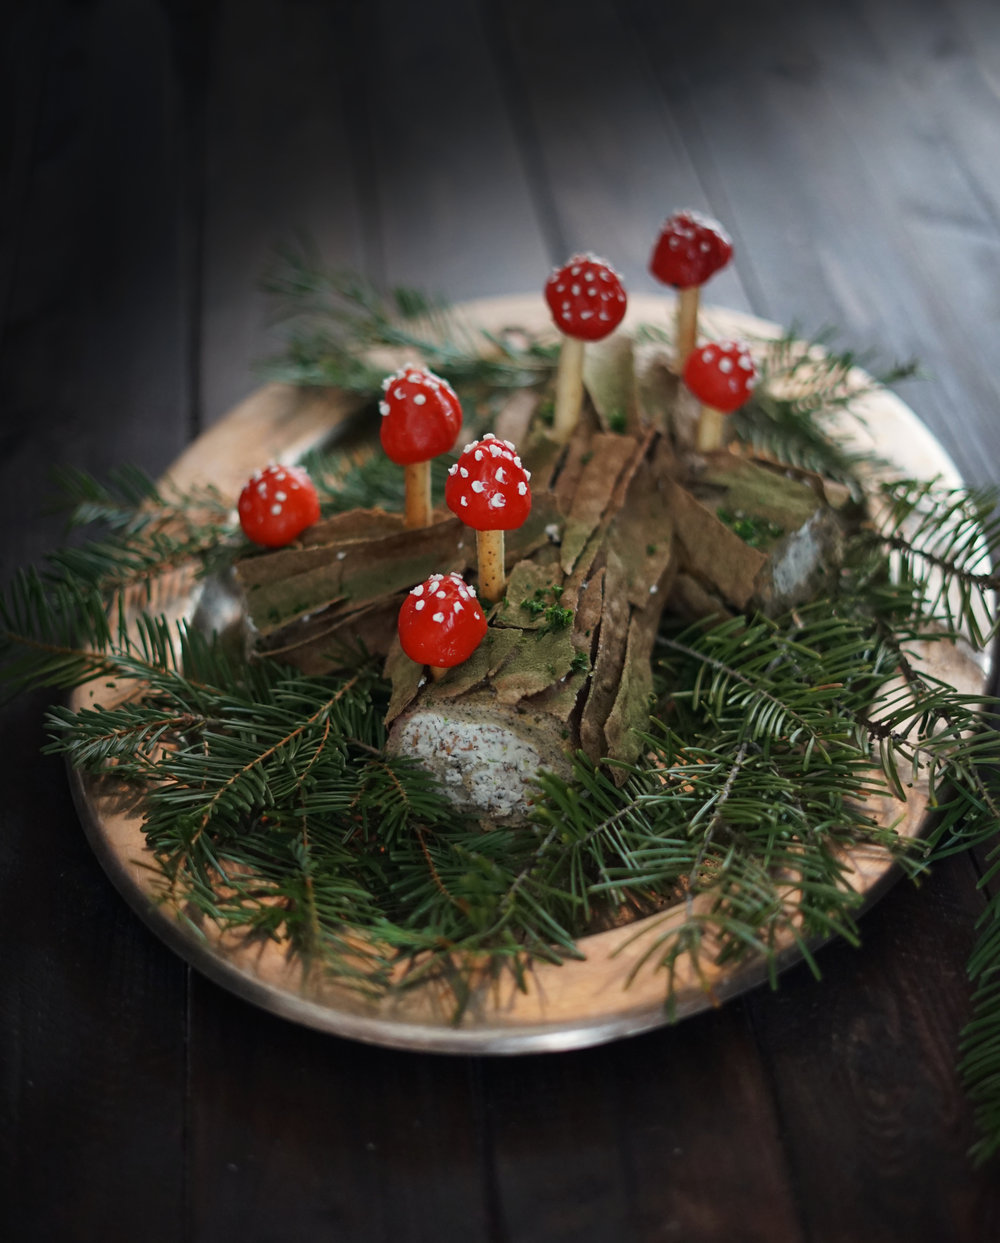 Blog Image De Noel.Savory Wild Mushroom Buche De Noel The Wondersmith